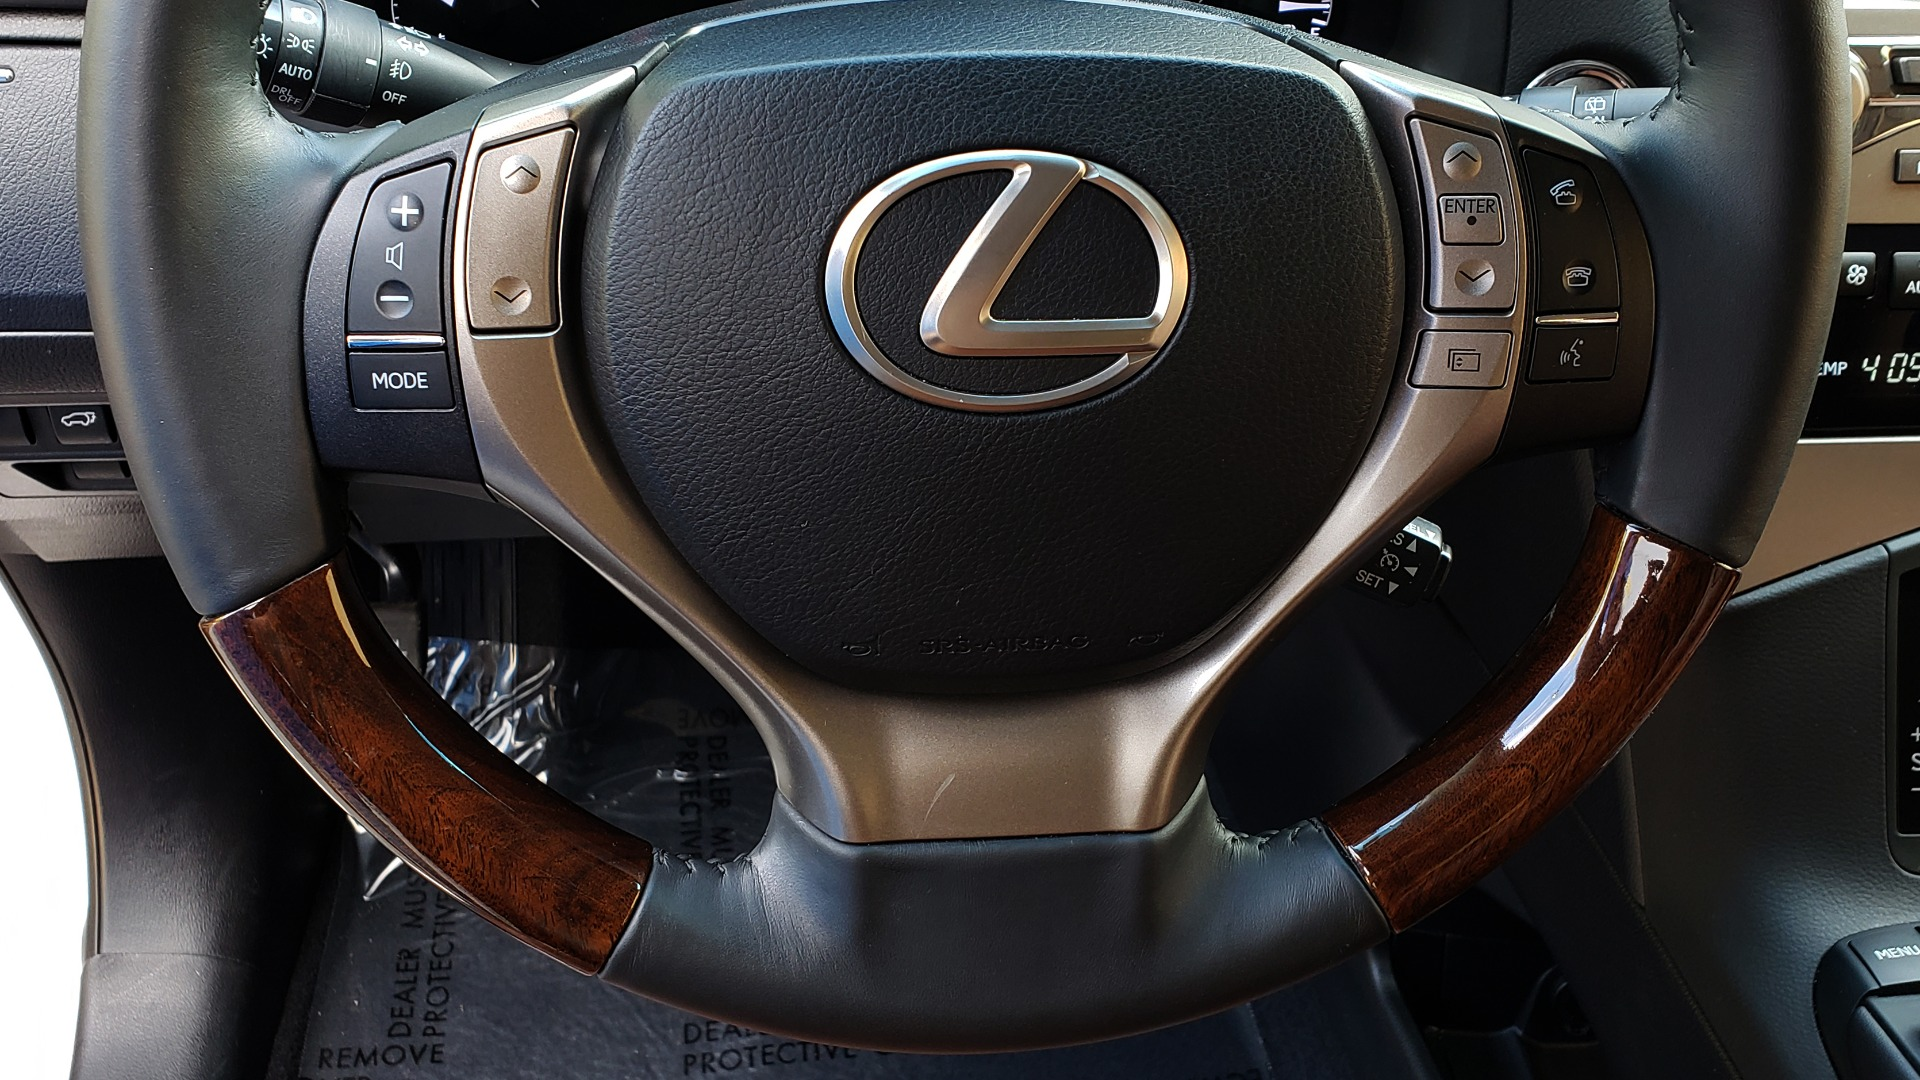 Used 2015 Lexus RX 350 PREMIUM PKG / COMFORT PKG / NAV / SUNROOF / BSM / TOWING for sale Sold at Formula Imports in Charlotte NC 28227 43